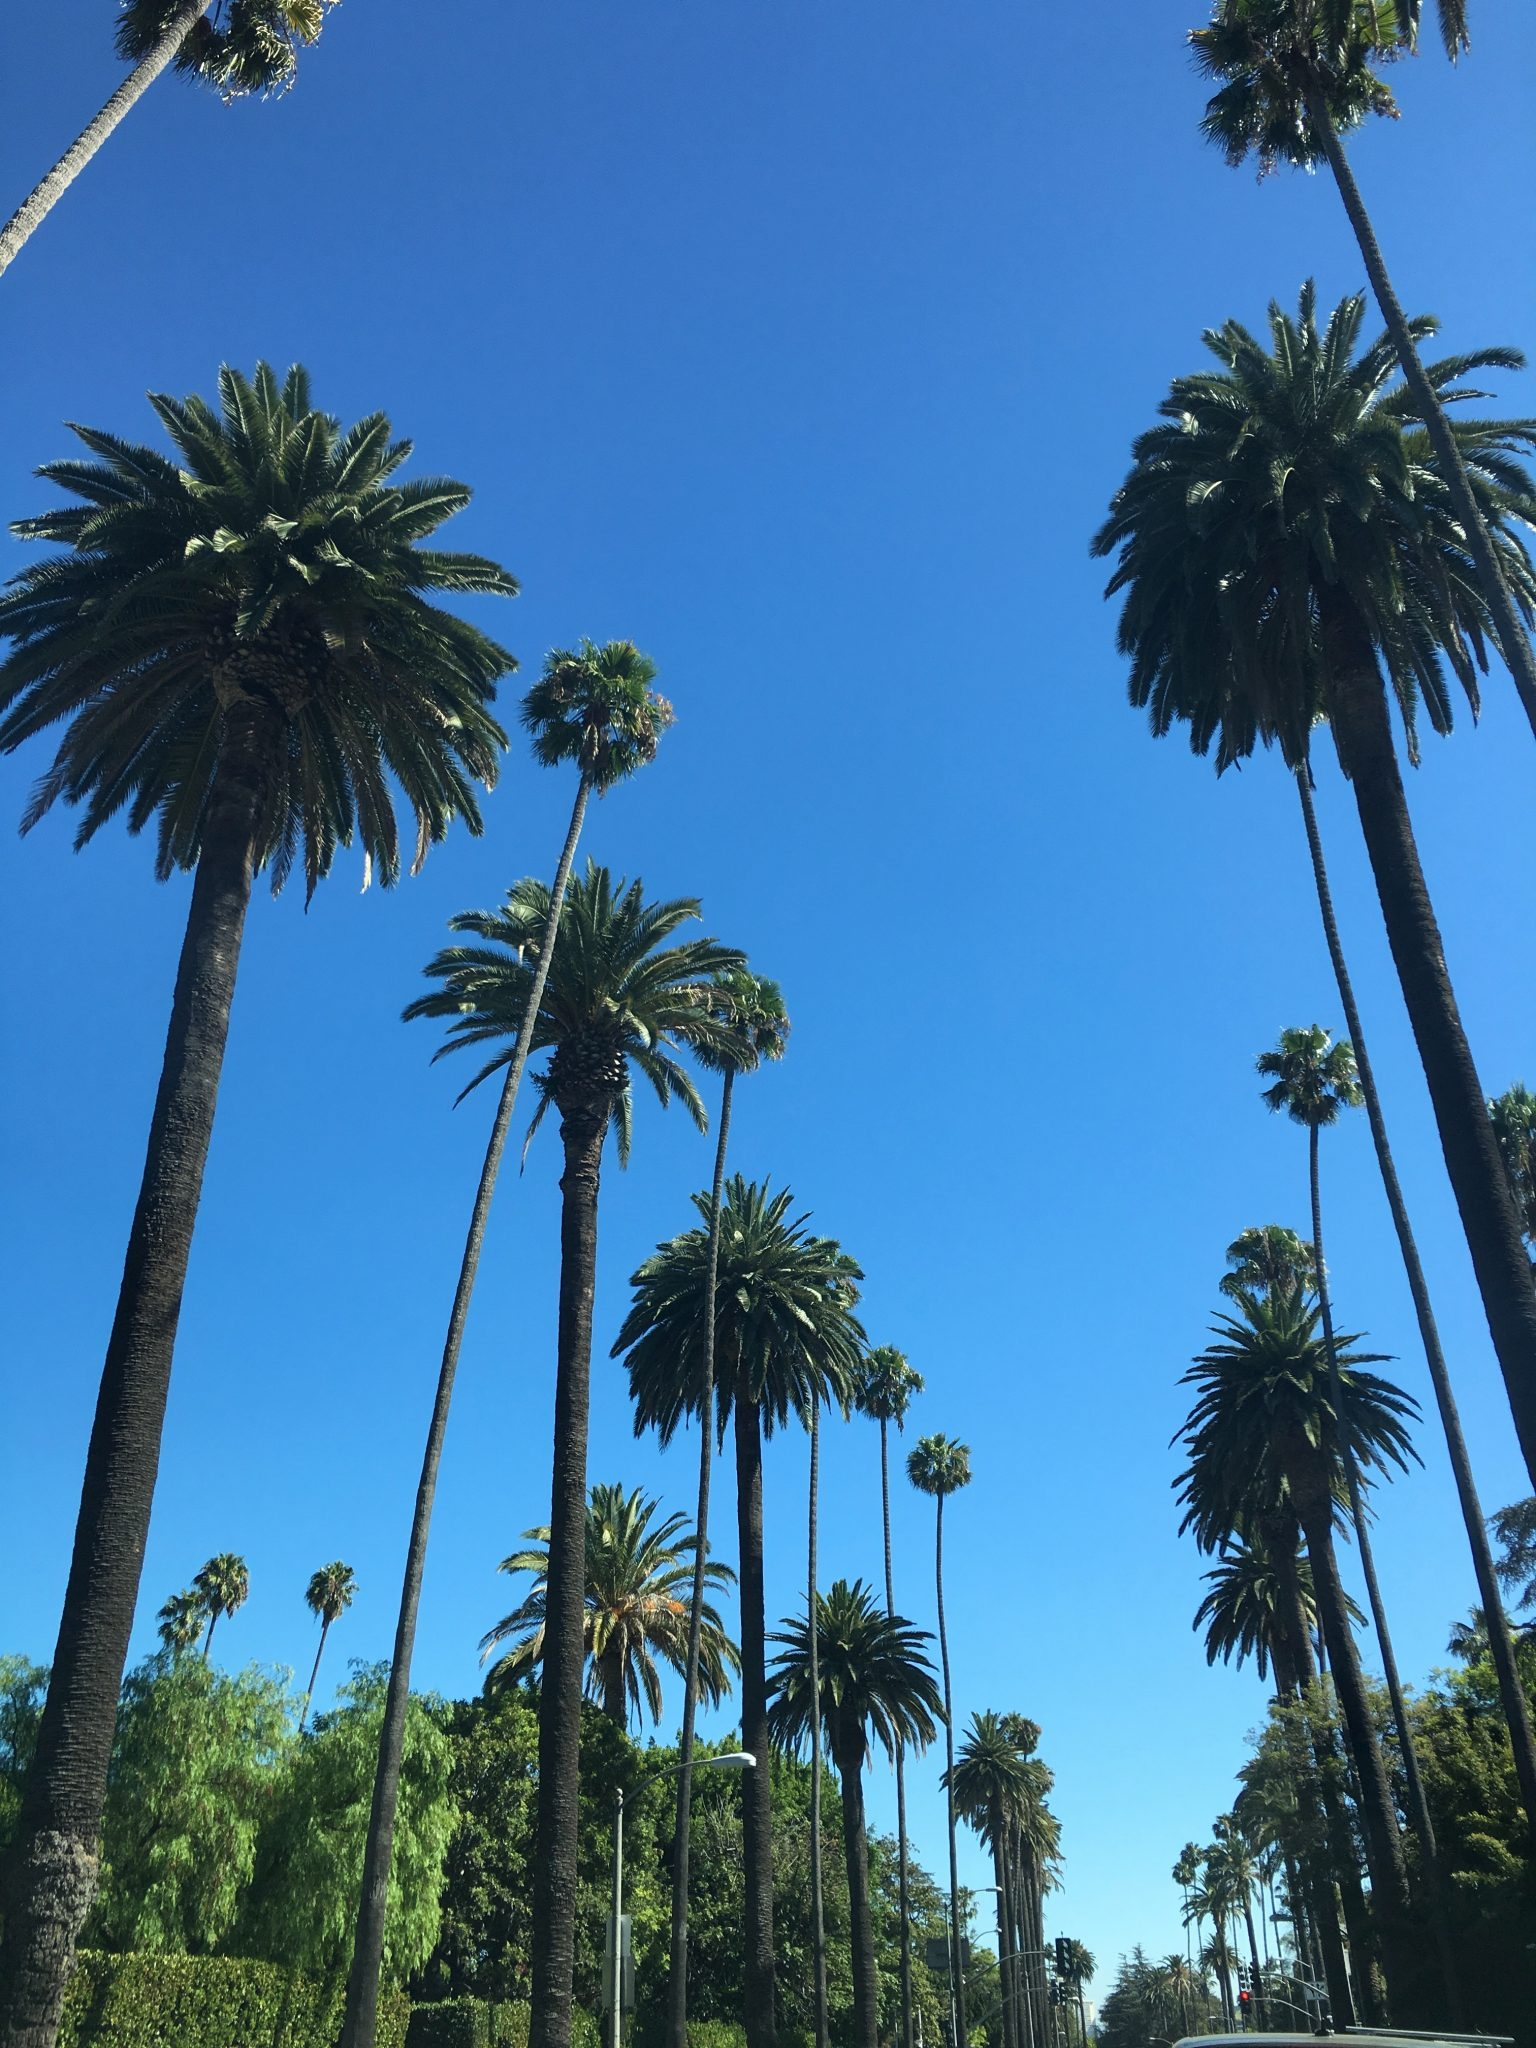 The most fascinating places in Los Angeles